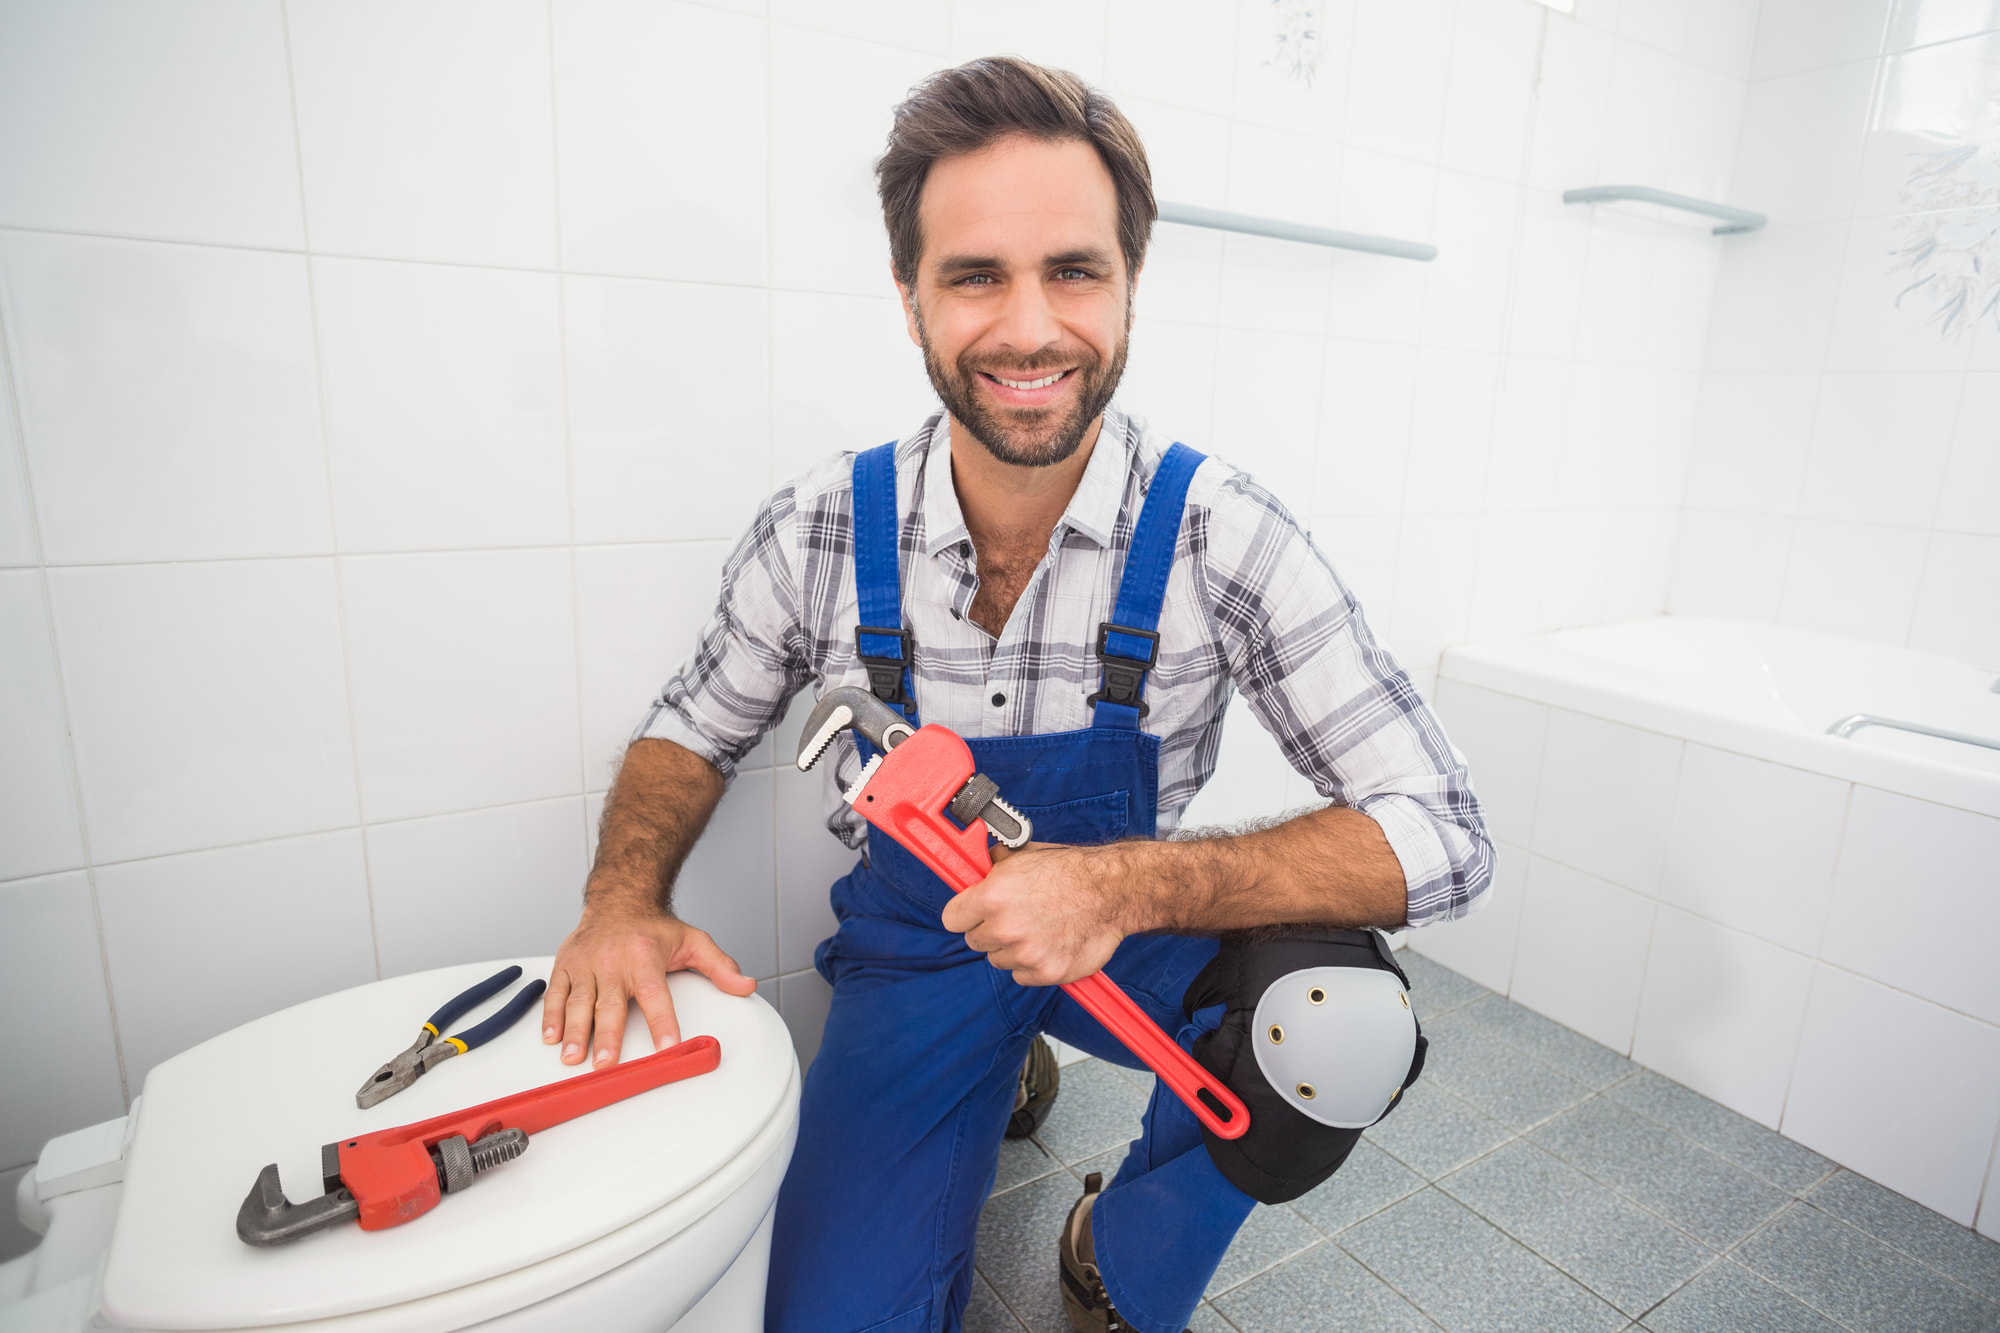 Emergency Plumber Orlando, Florida